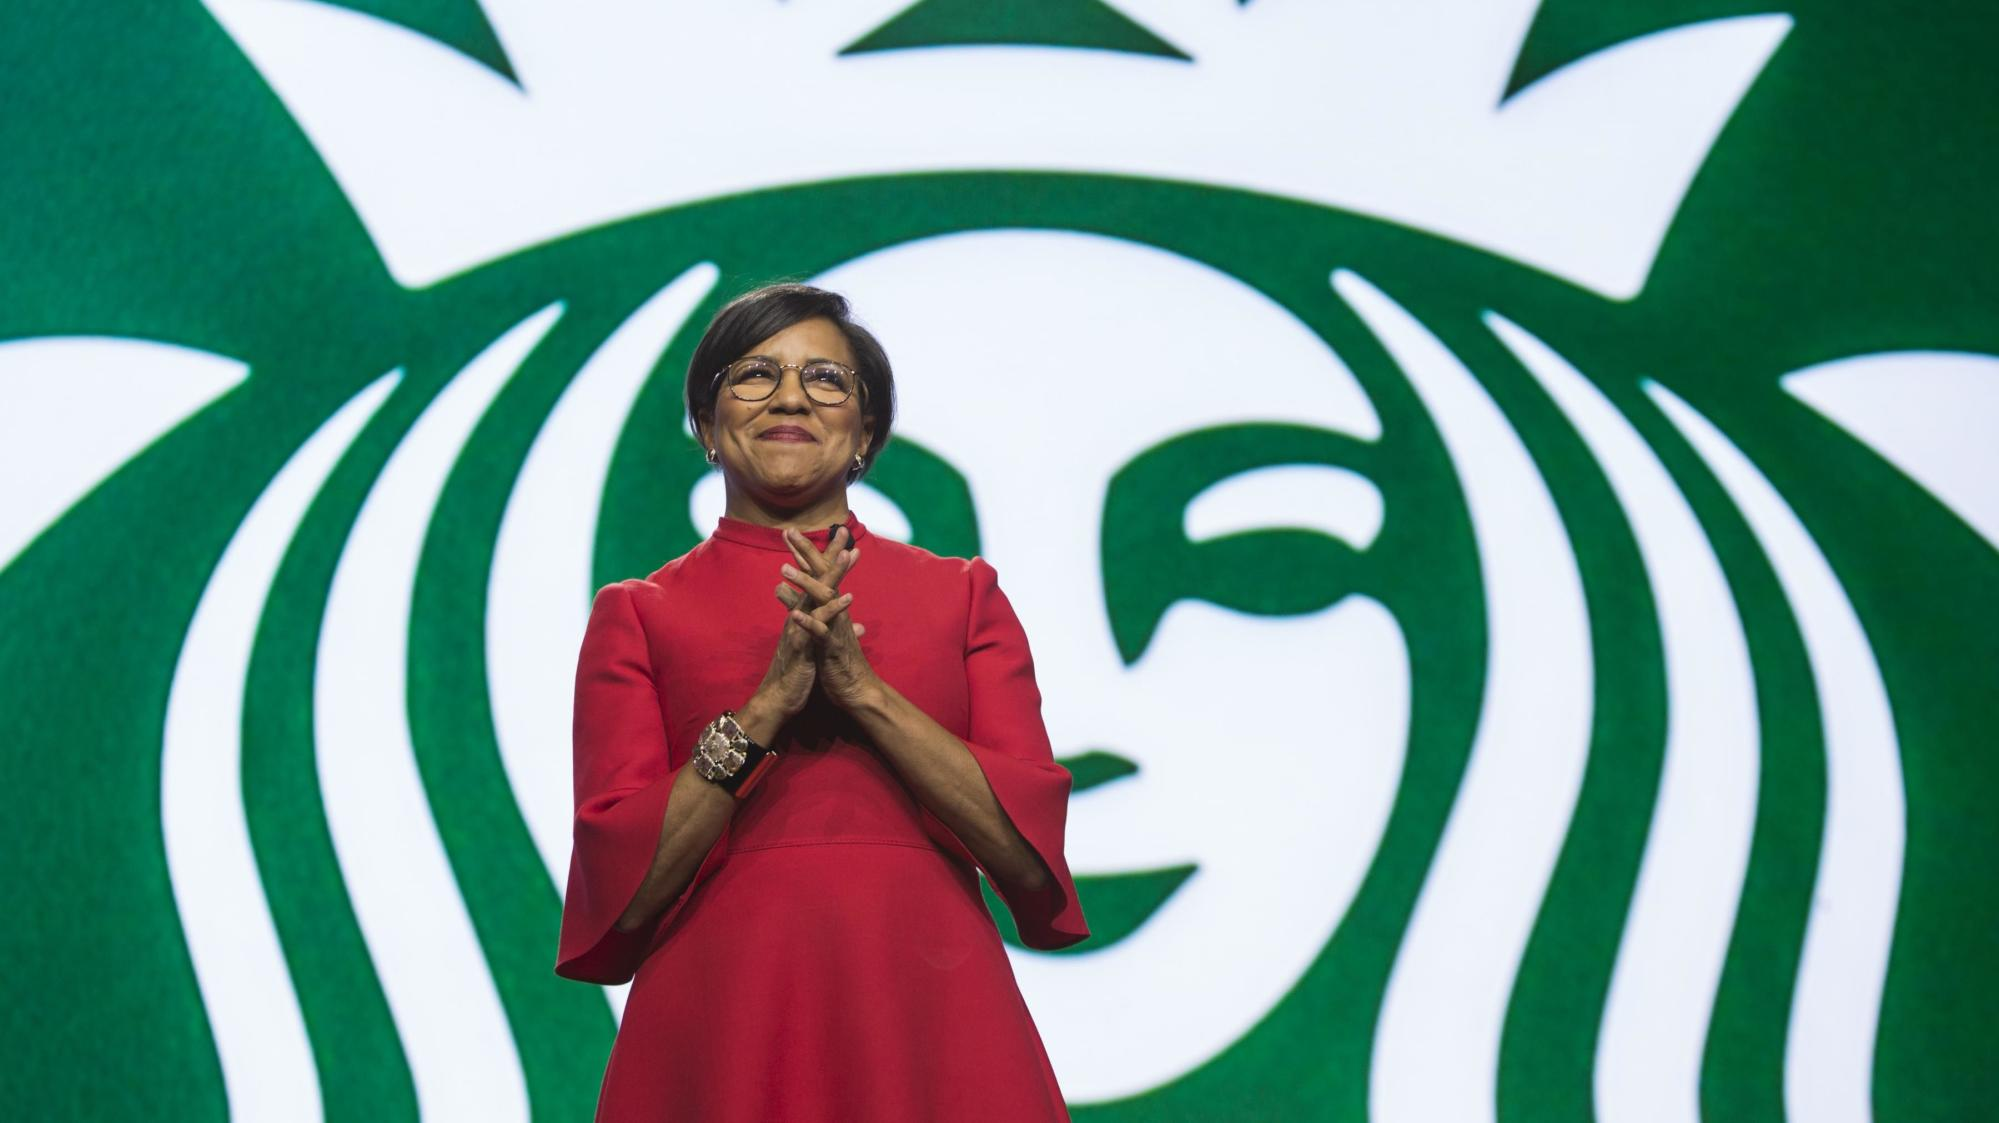 ca.finance.yahoo.com: Starbucks COO Roz Brewer on how the company has adjusted business due to COVID-19